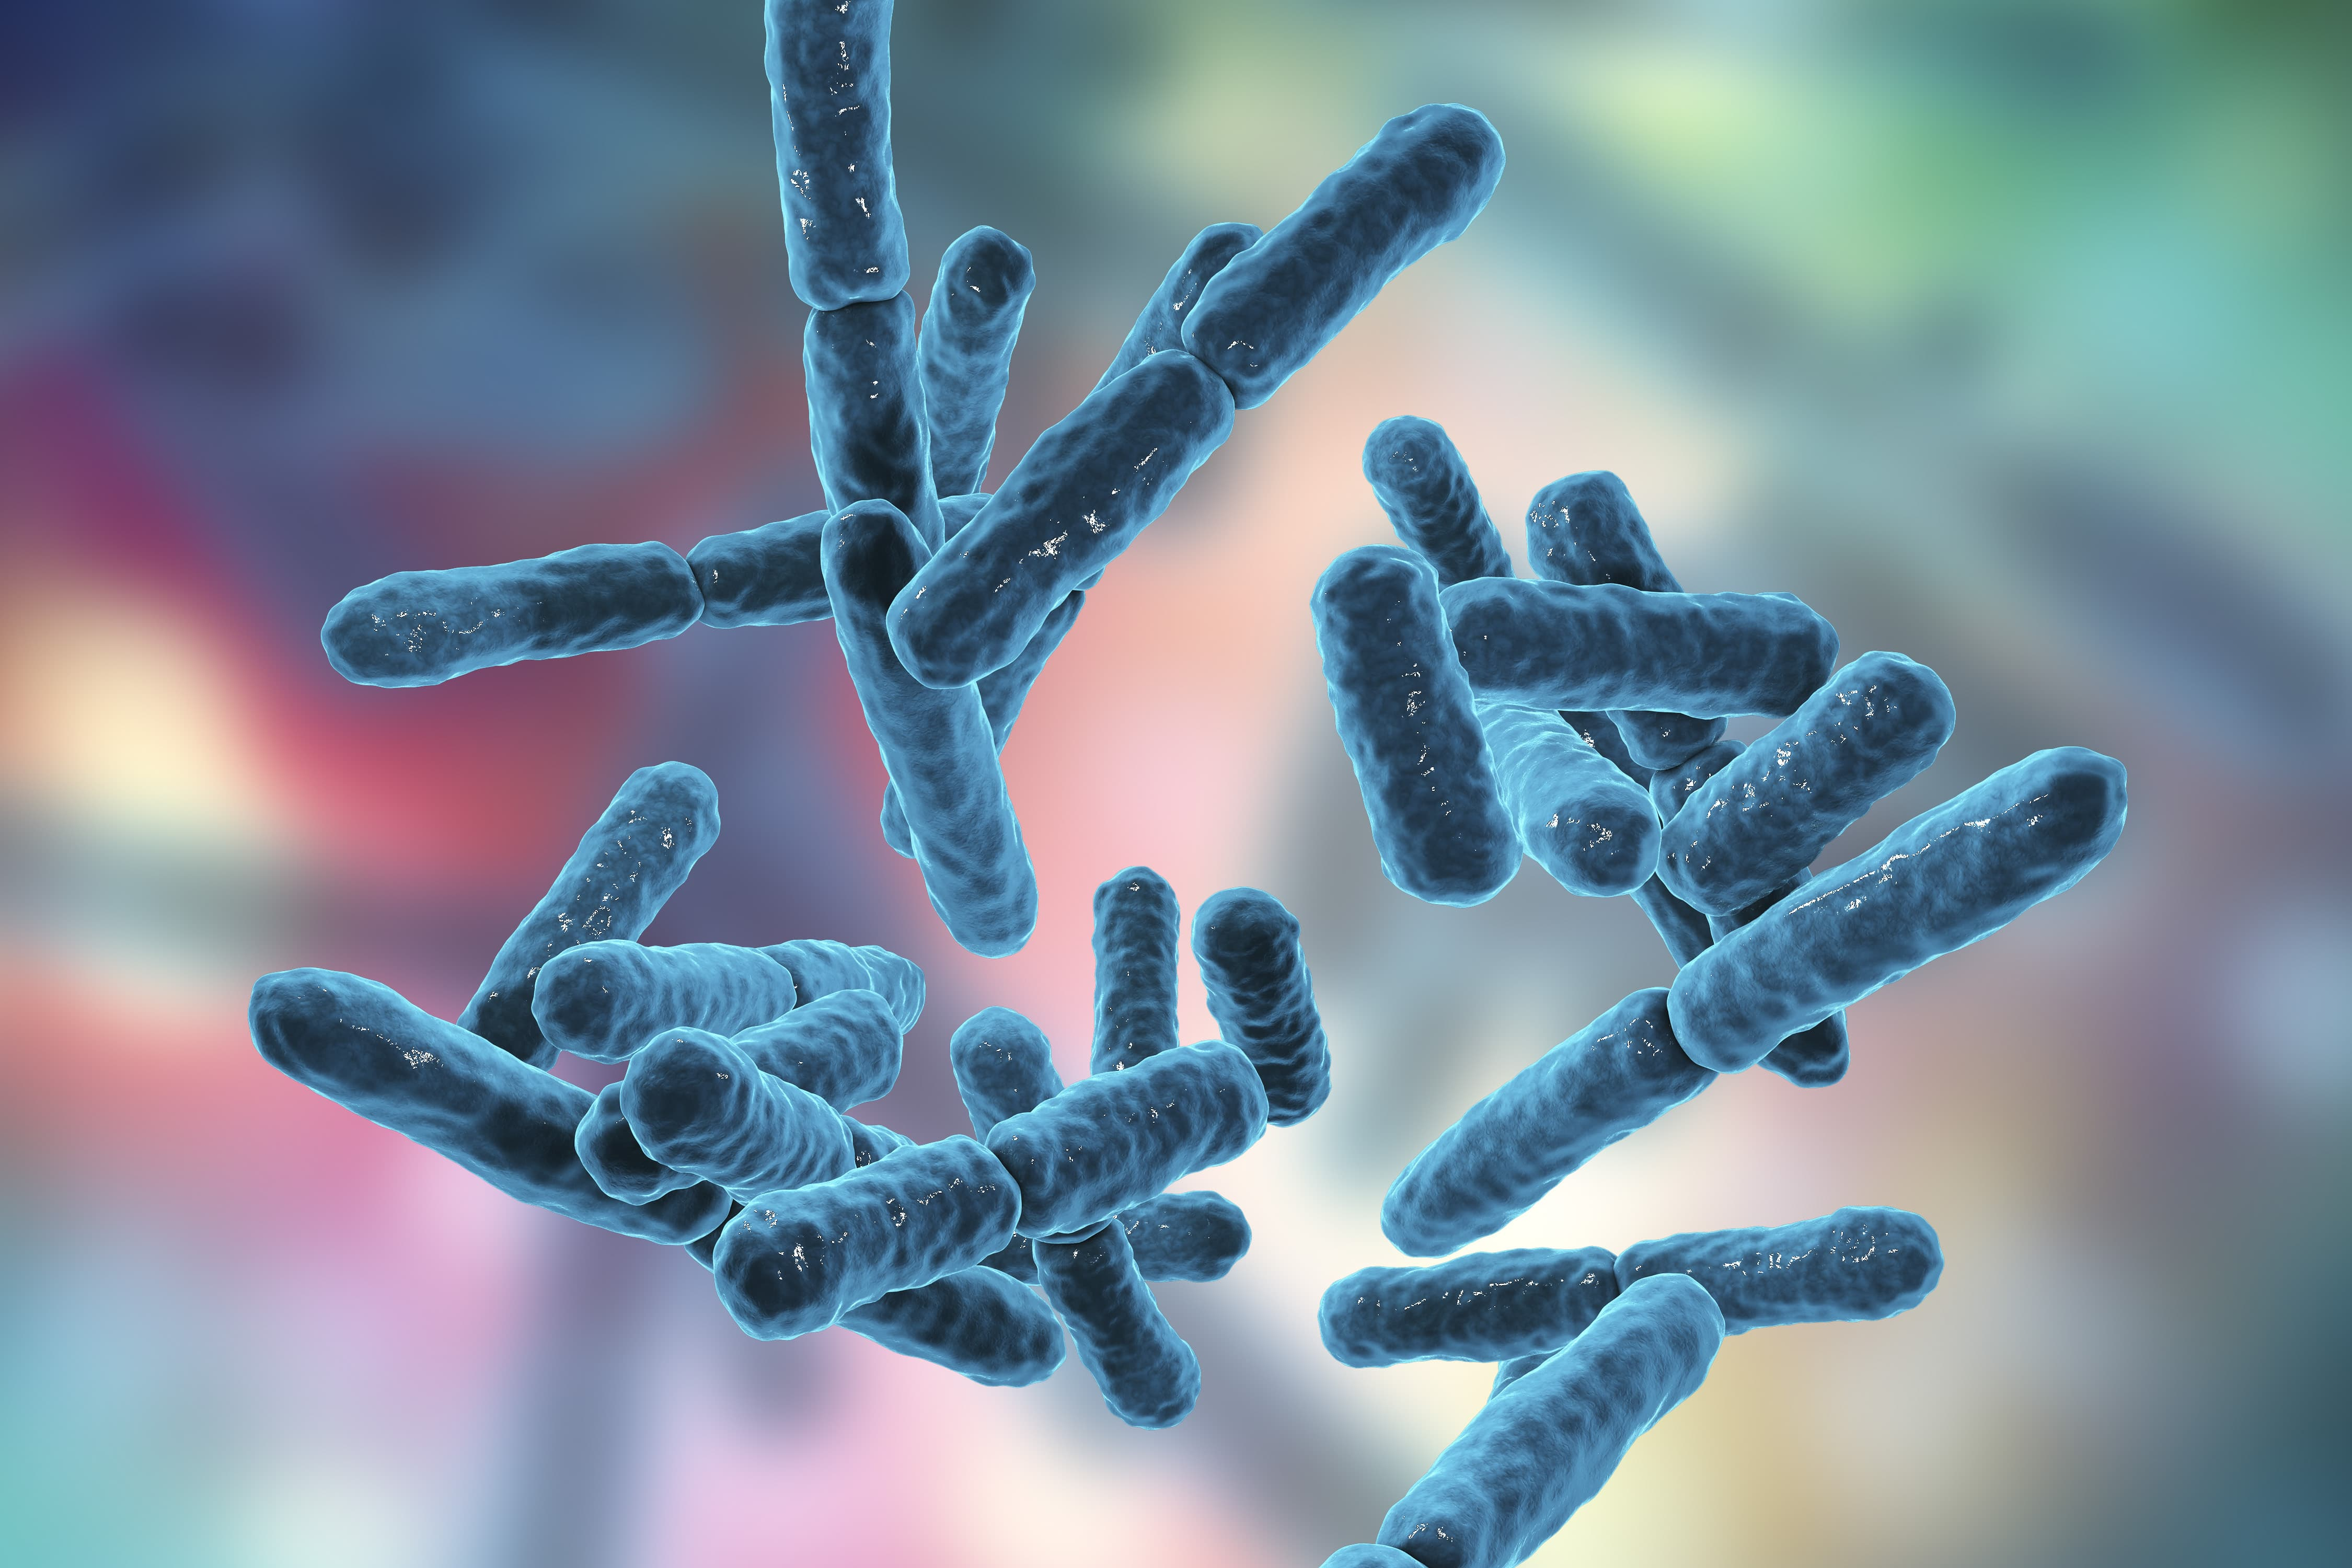 Bacteria Bifidobacterium, gram-positive anaerobic rod-shaped bacteria which are part of normal flora of human intestine are used as probiotics and in yoghurt production.